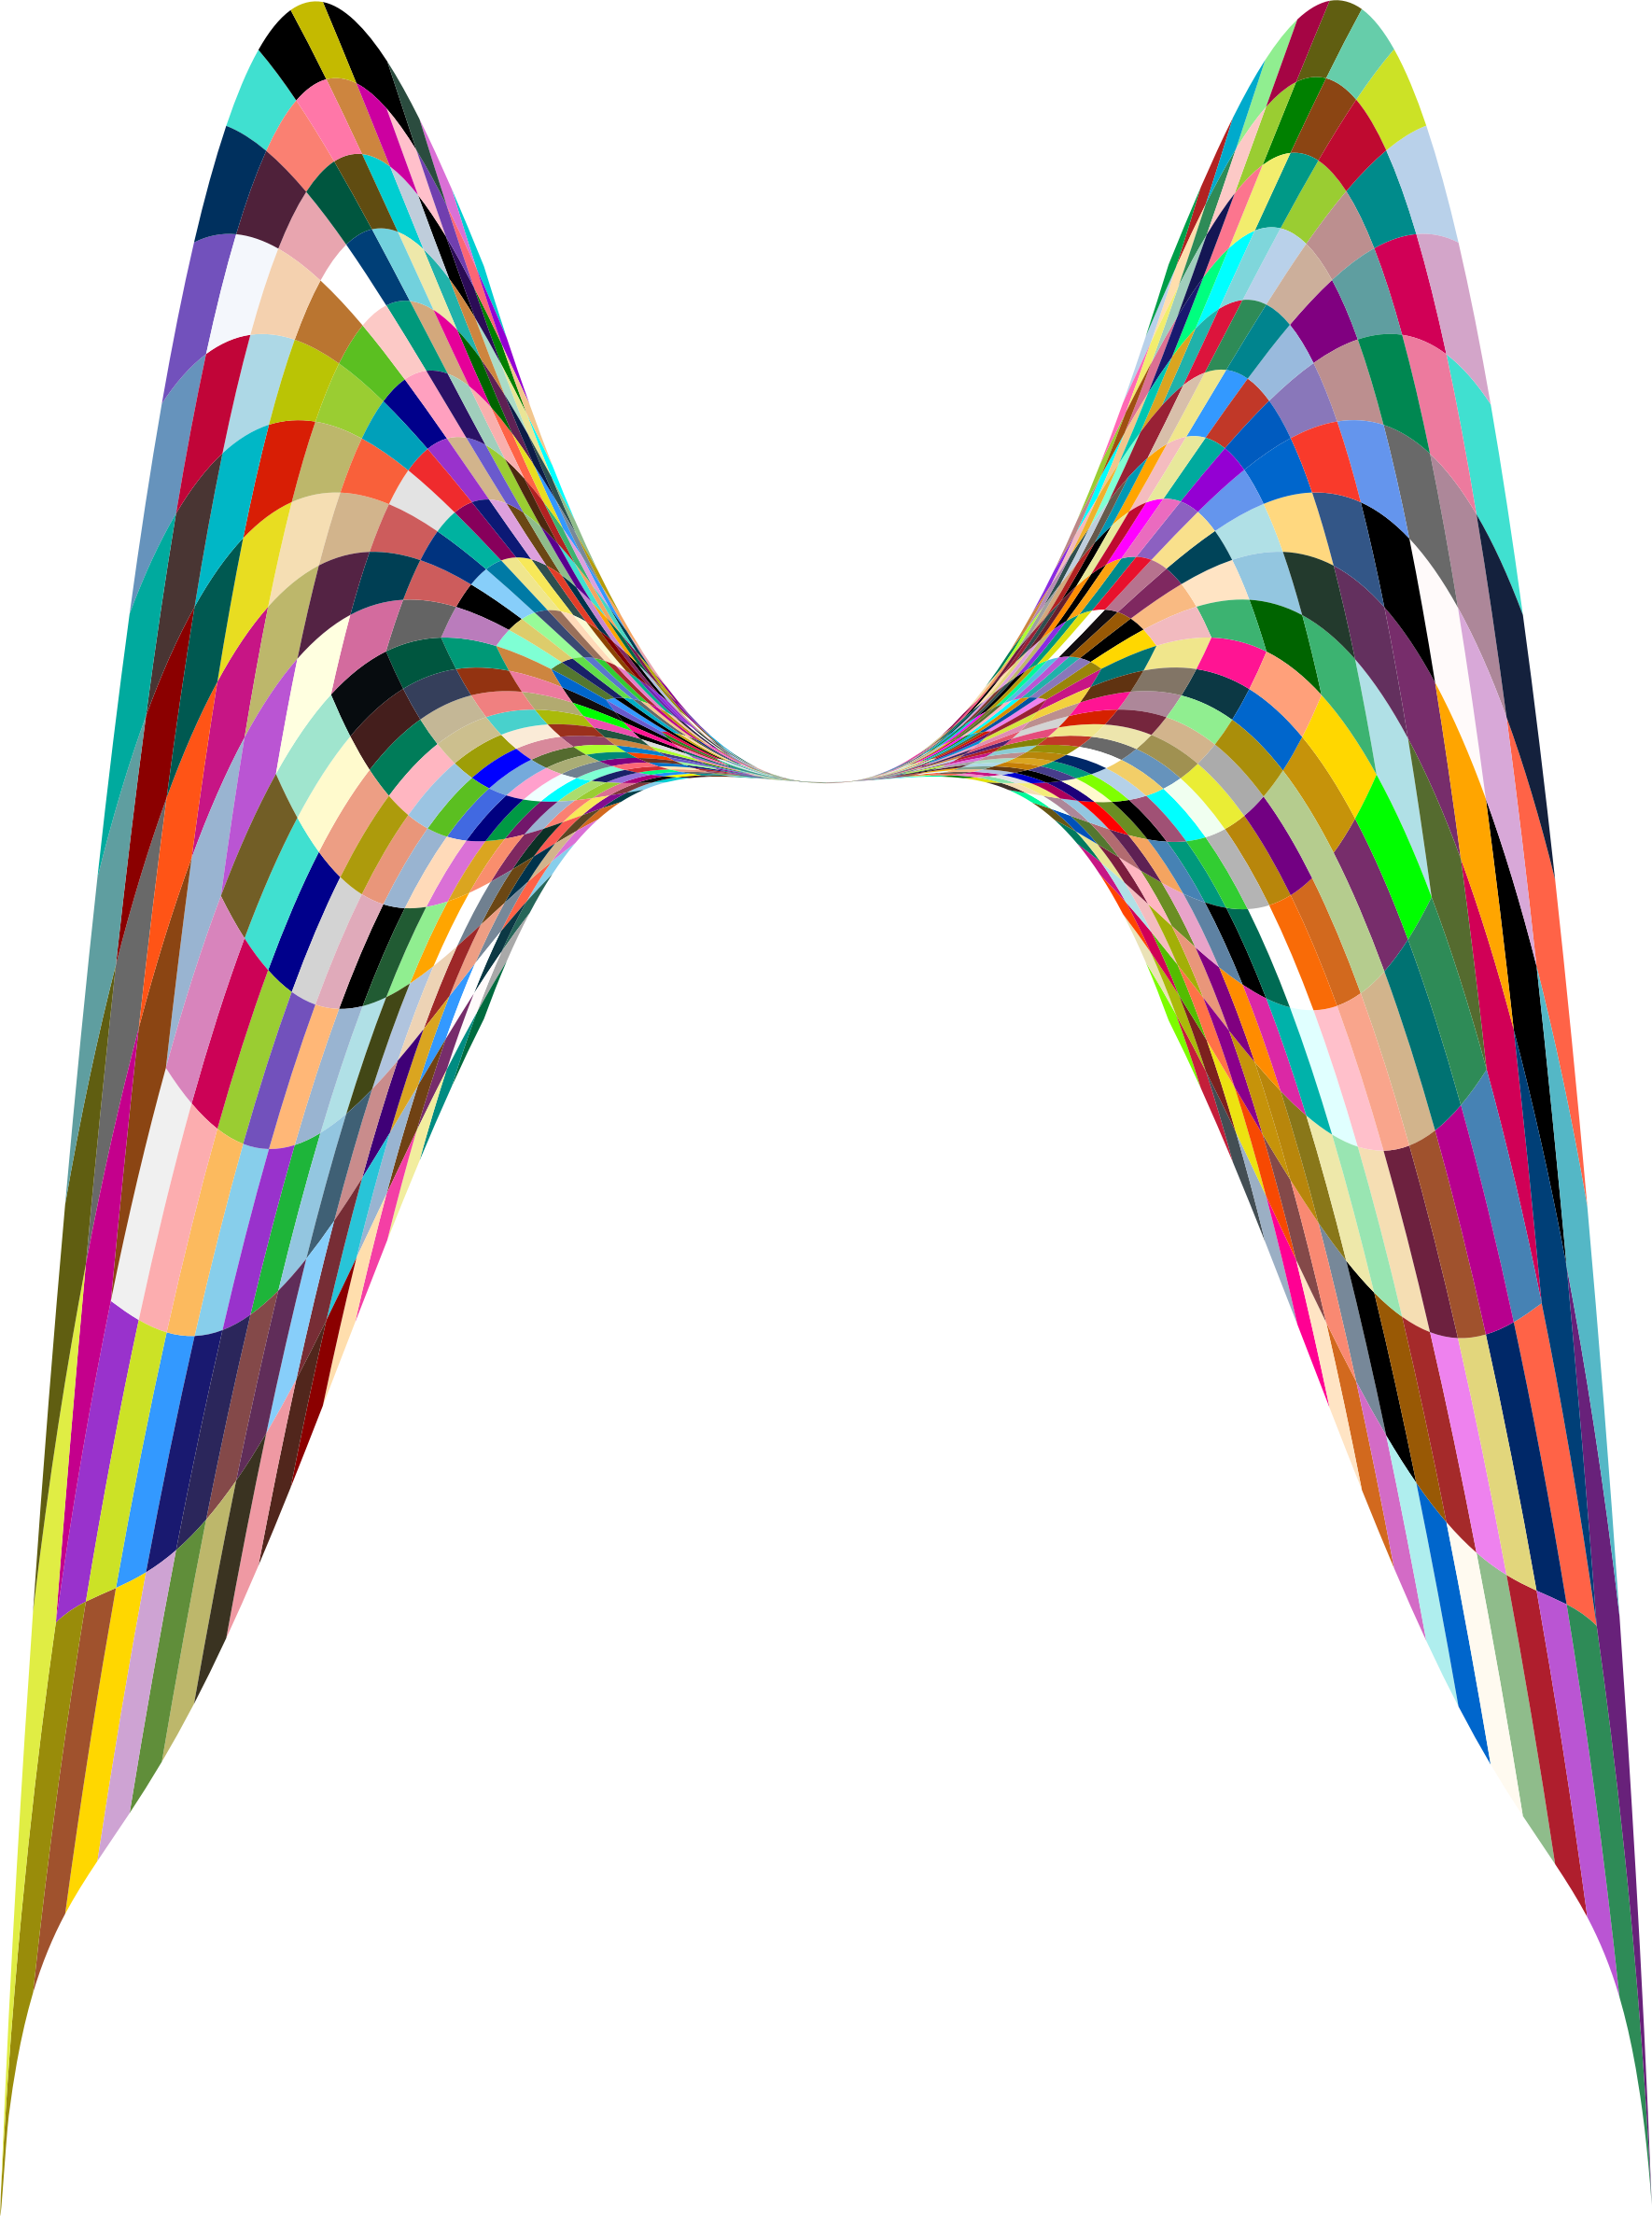 Png angel wings. Colorful geometric icons free